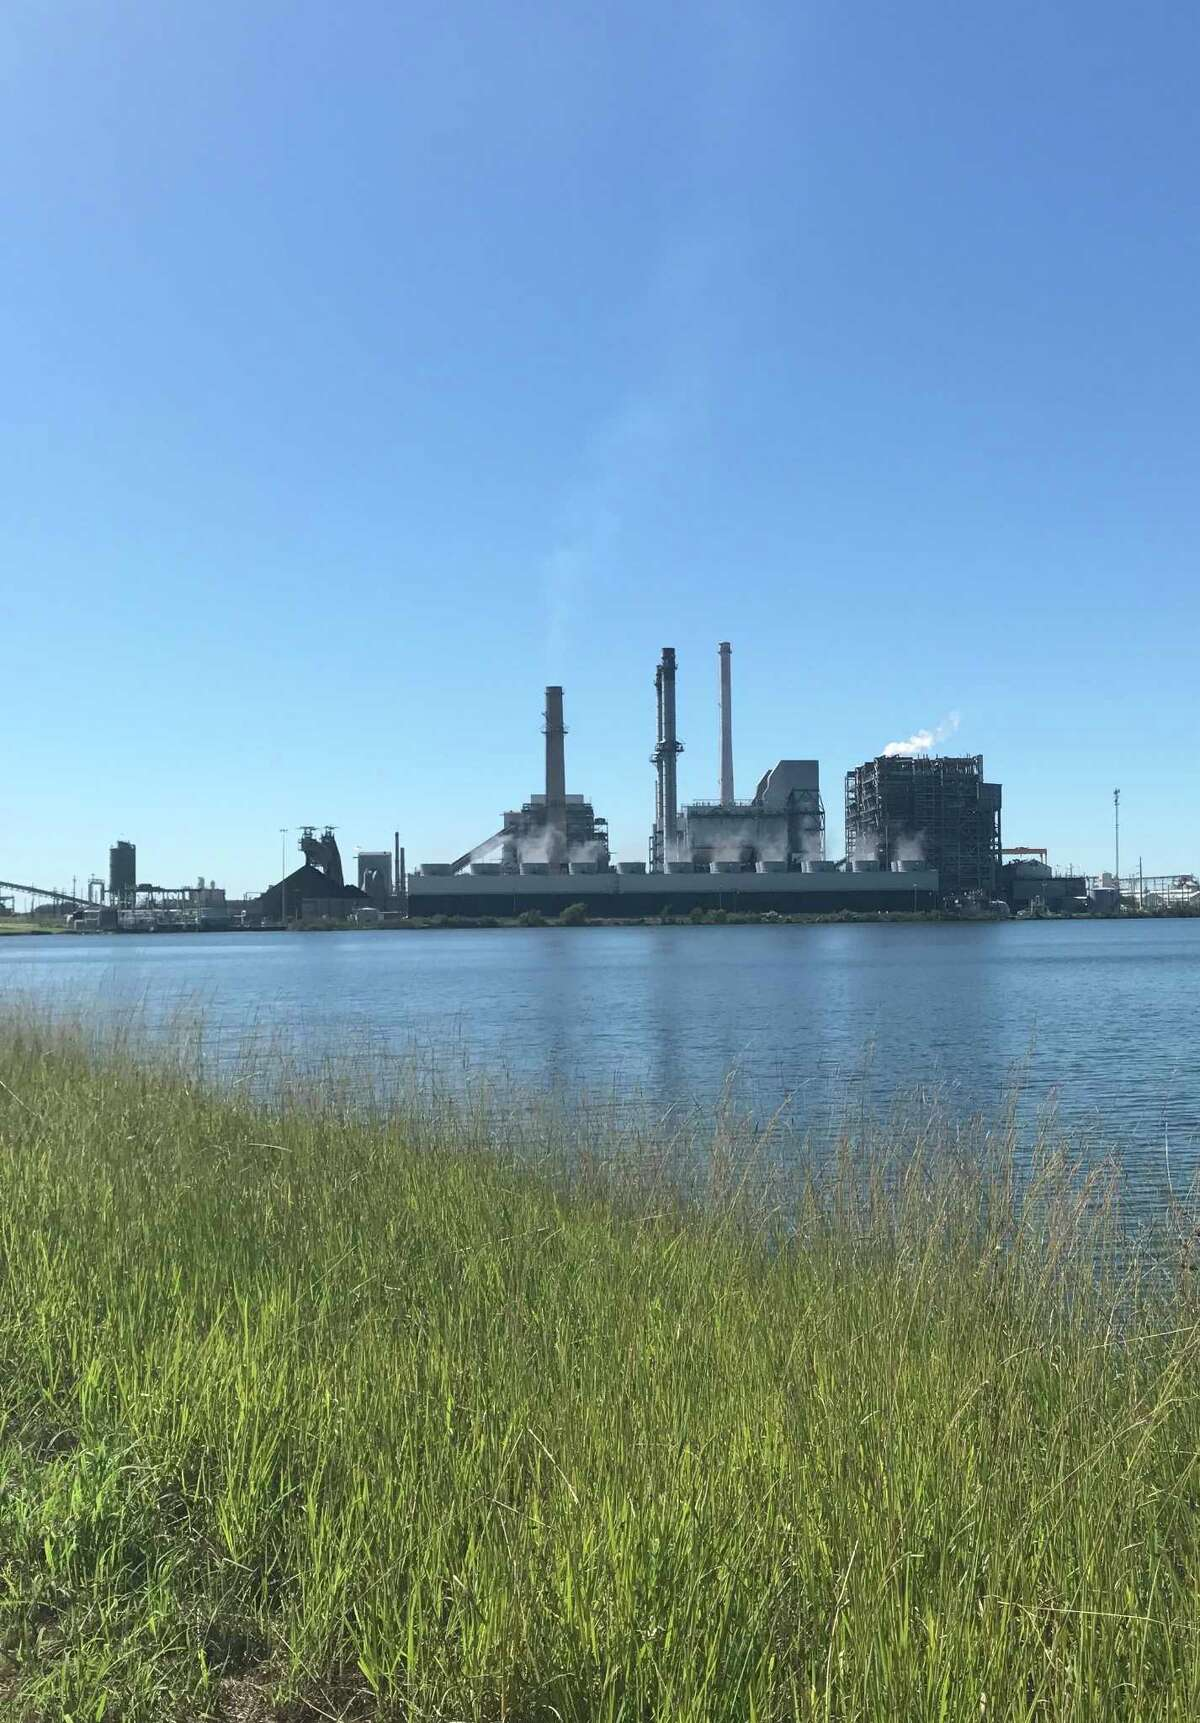 Luminant, Milam County's largest employer, is shutting down its coal-fired power plant right after the first of the year.